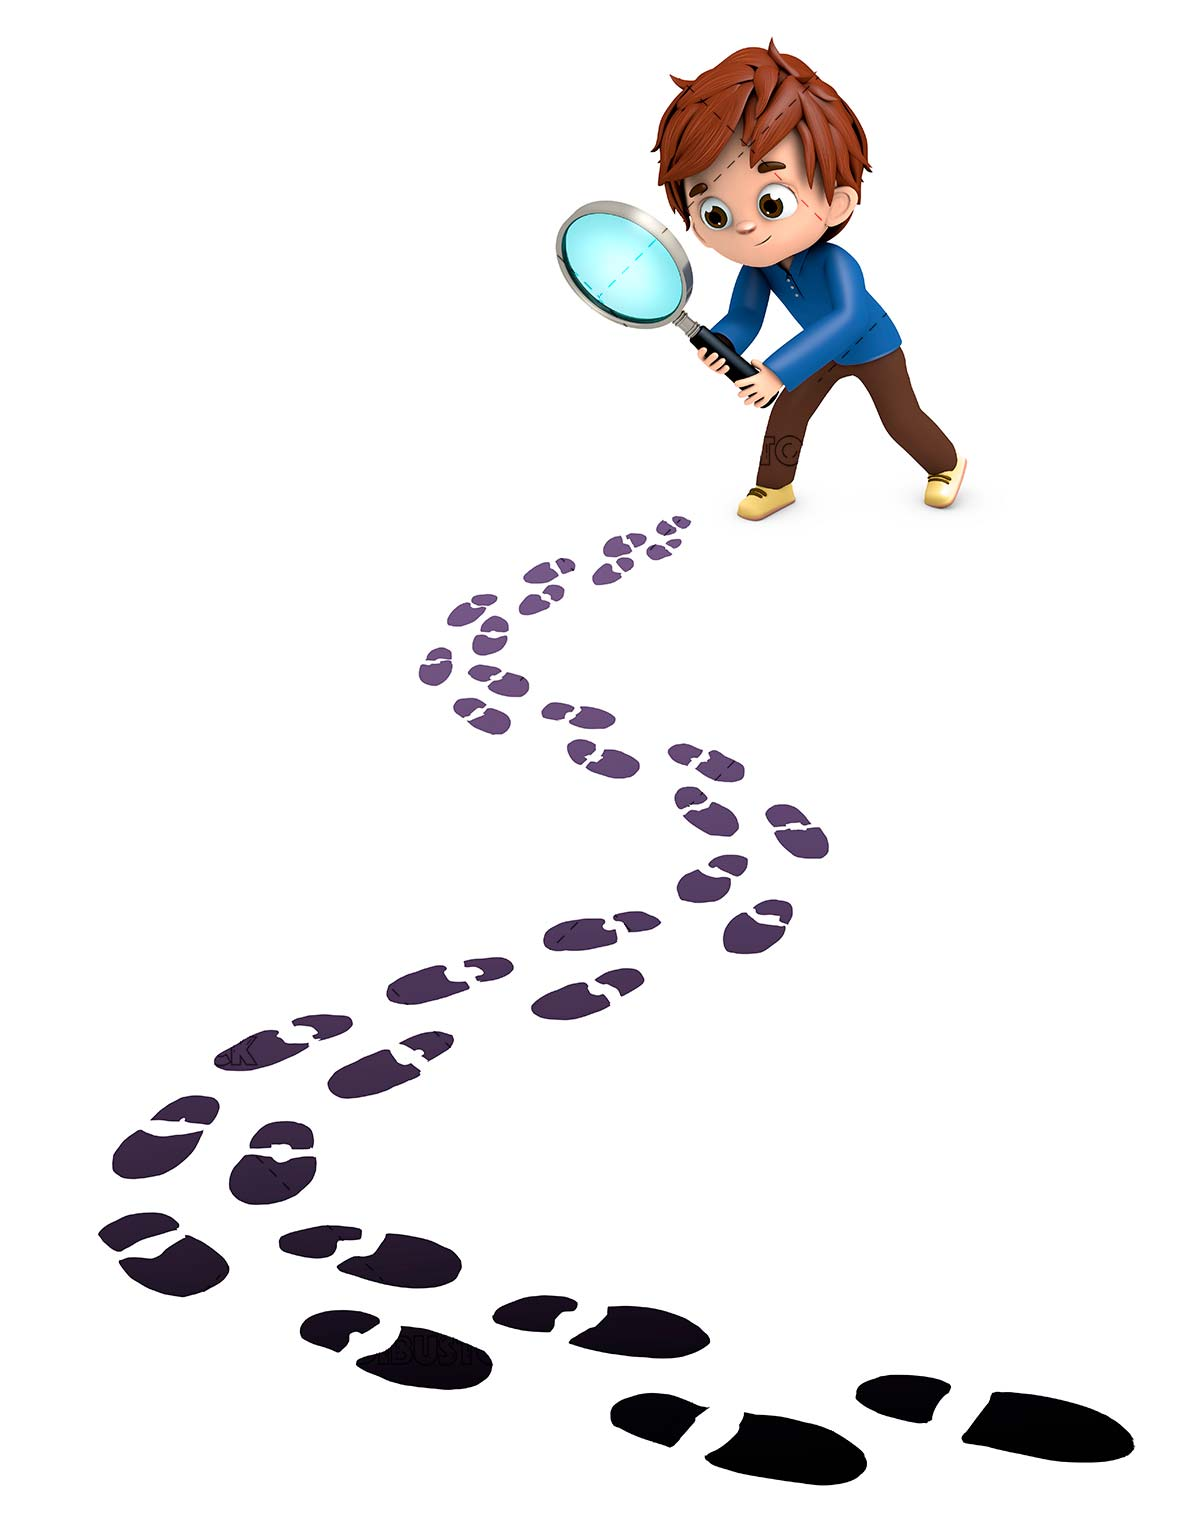 Boy with magnifying glass following footprints